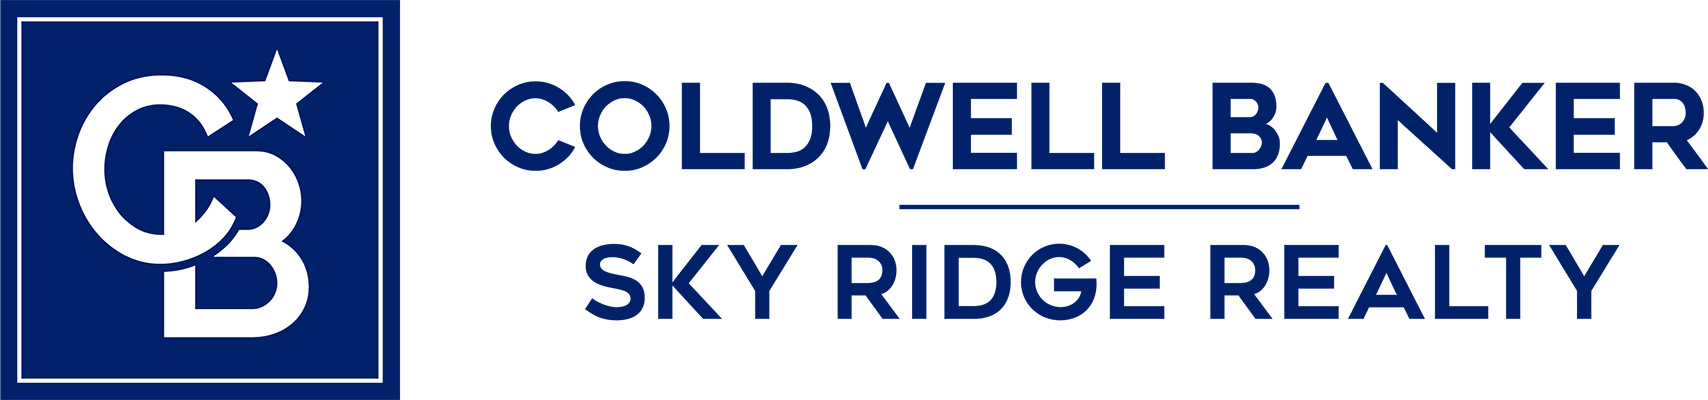 Jim Price - Coldwell Banker Sky Ridge Realty